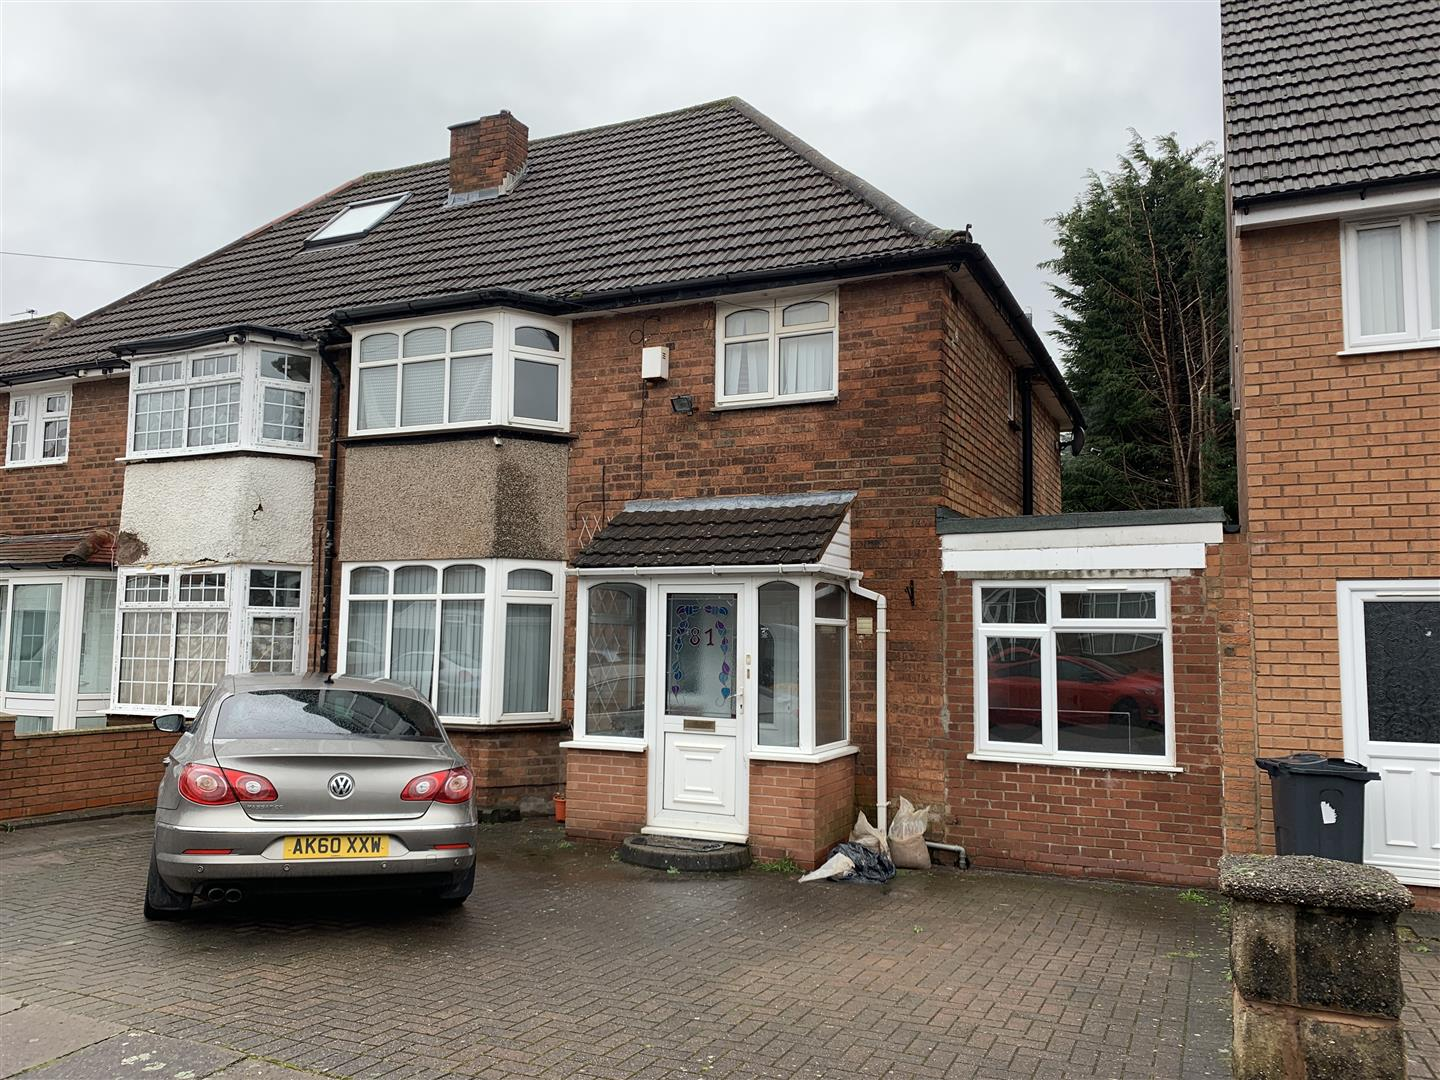 3 bed house for sale in Twycross Grove, Hodge Hill, Birmingham, B36